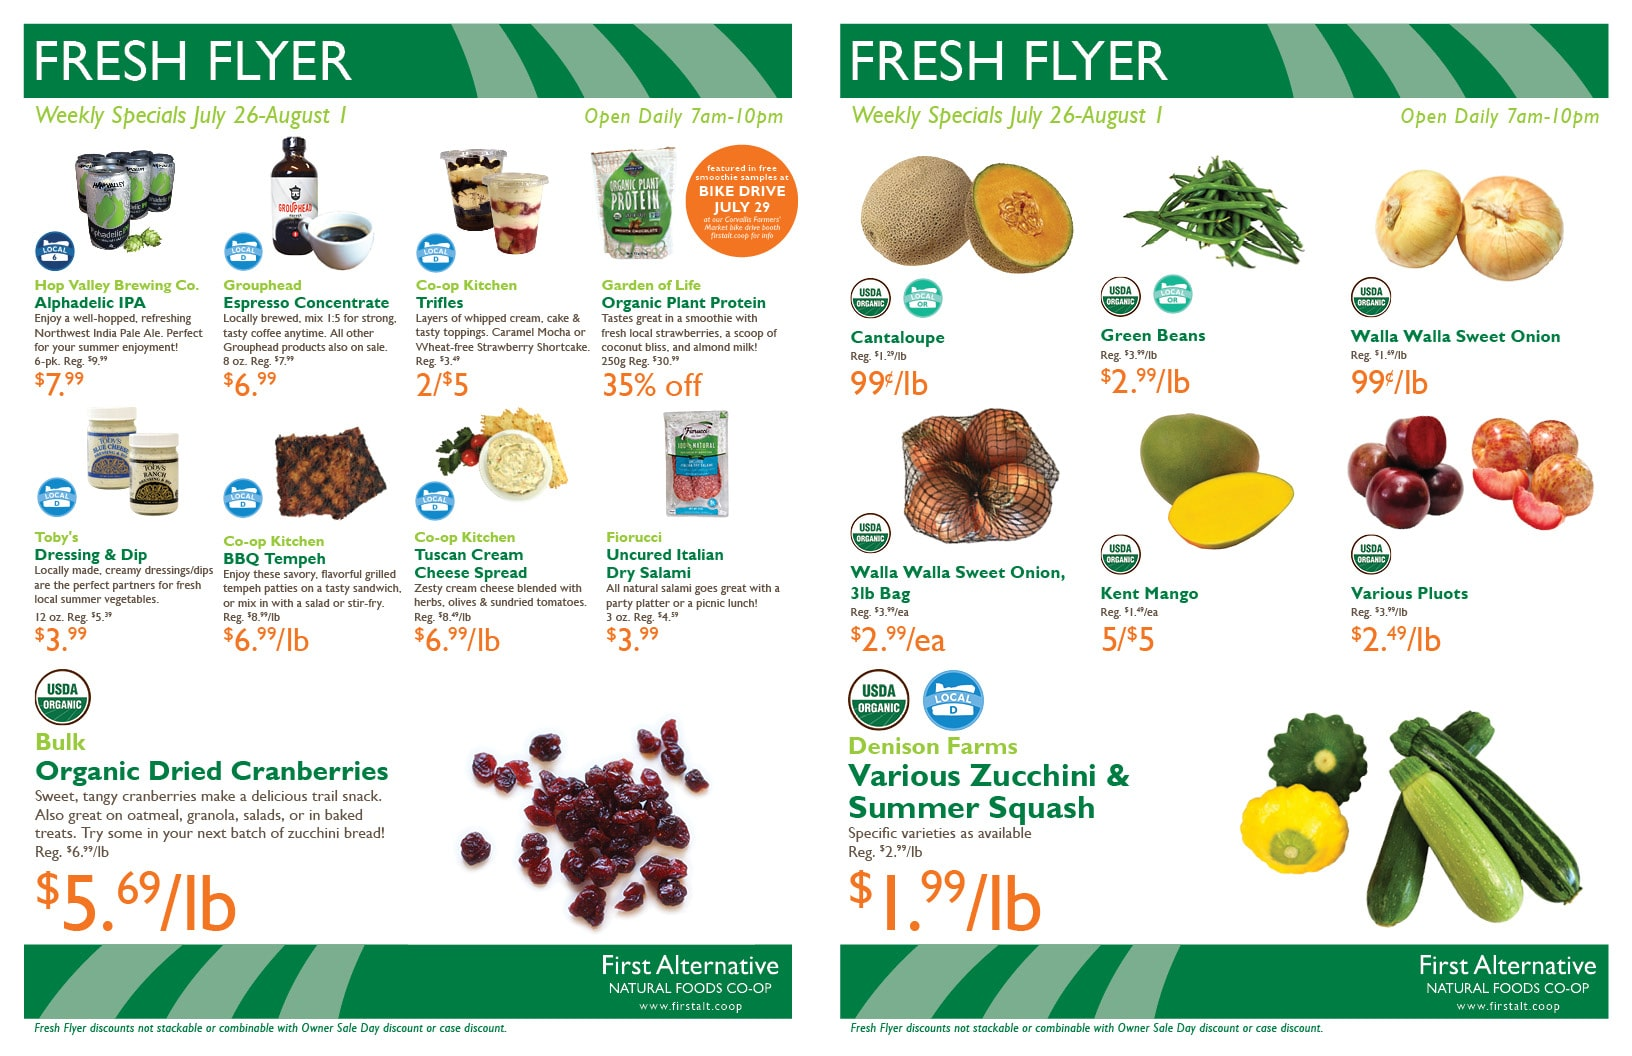 First Alternative Co-op Fresh Flyer July 26-August 1